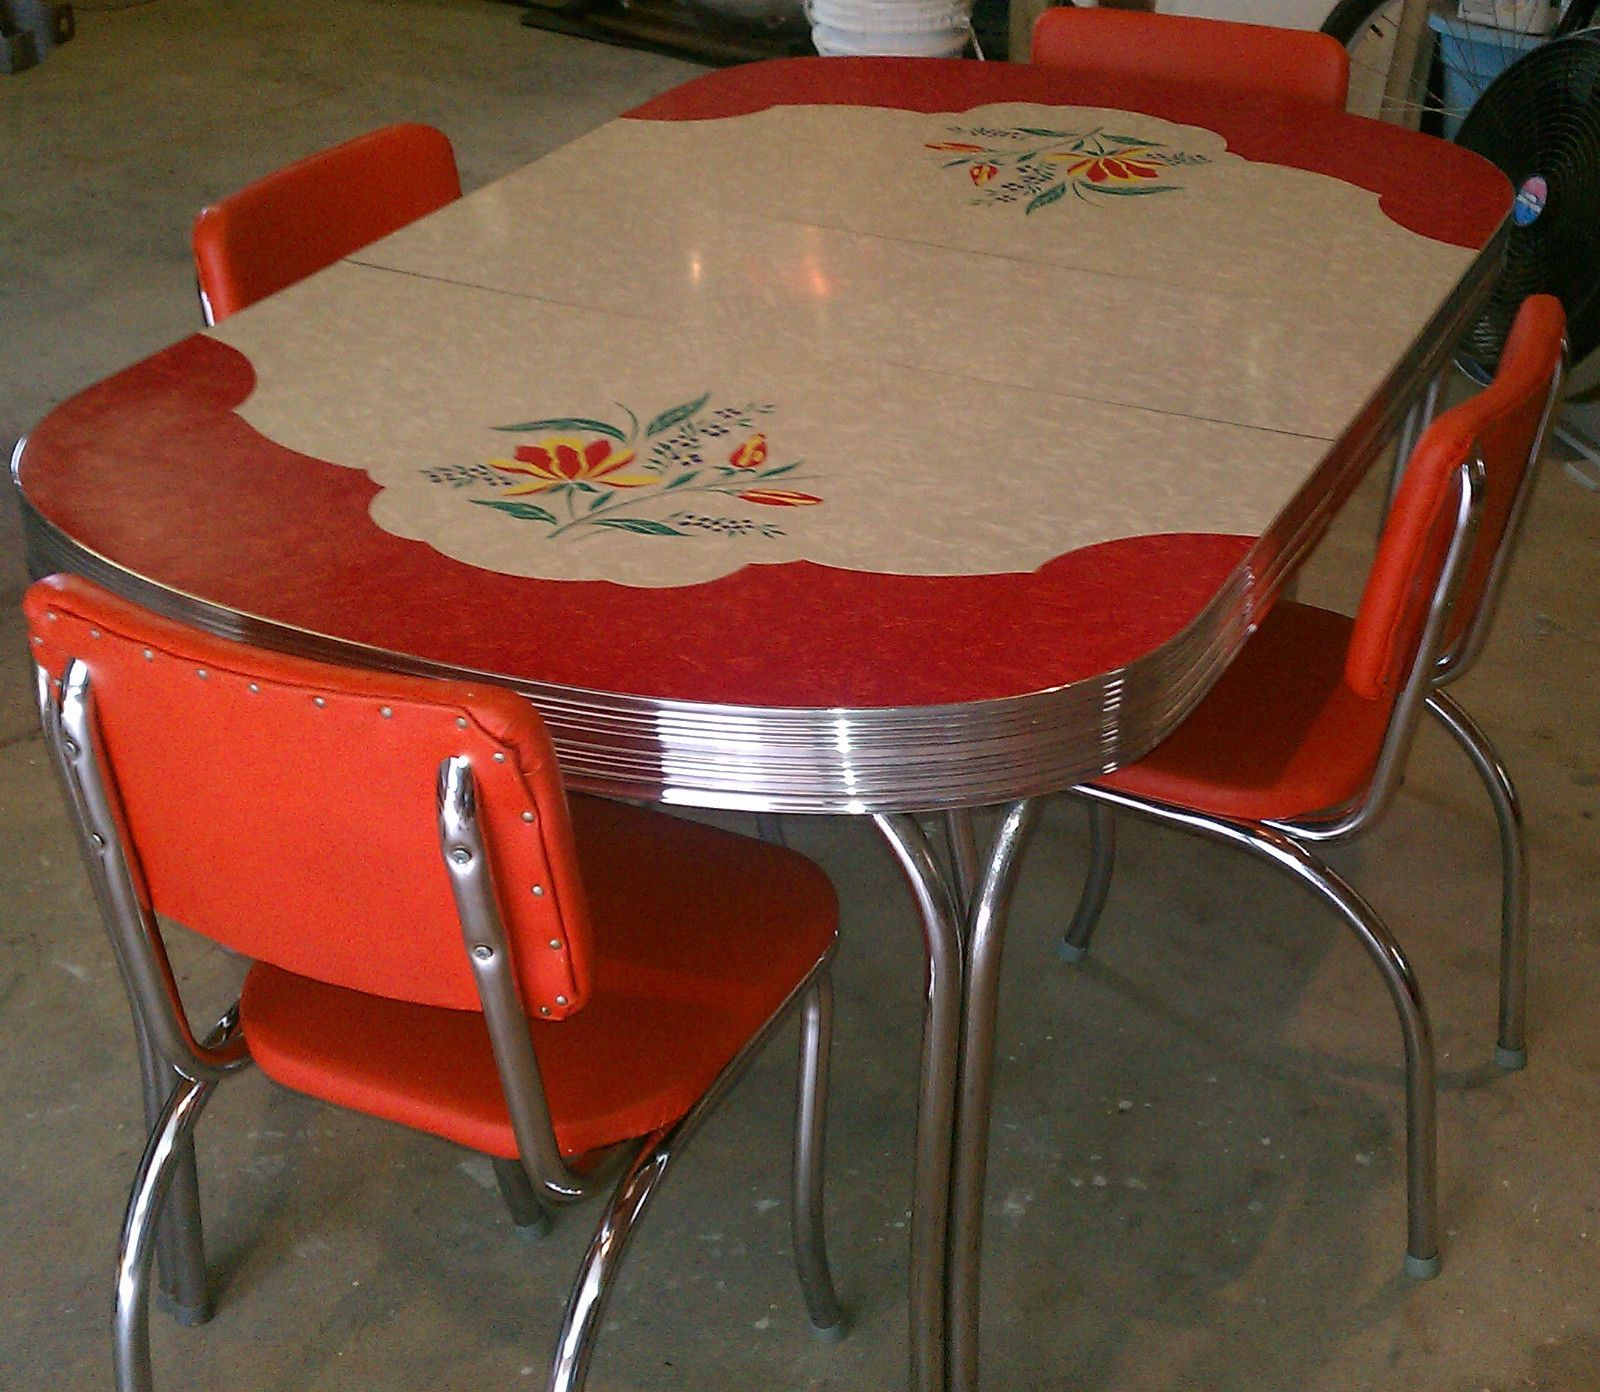 Retro Kühlschrank Orange Vintage Kitchen Formica Table 4 Chairs Chrome Orange Red White